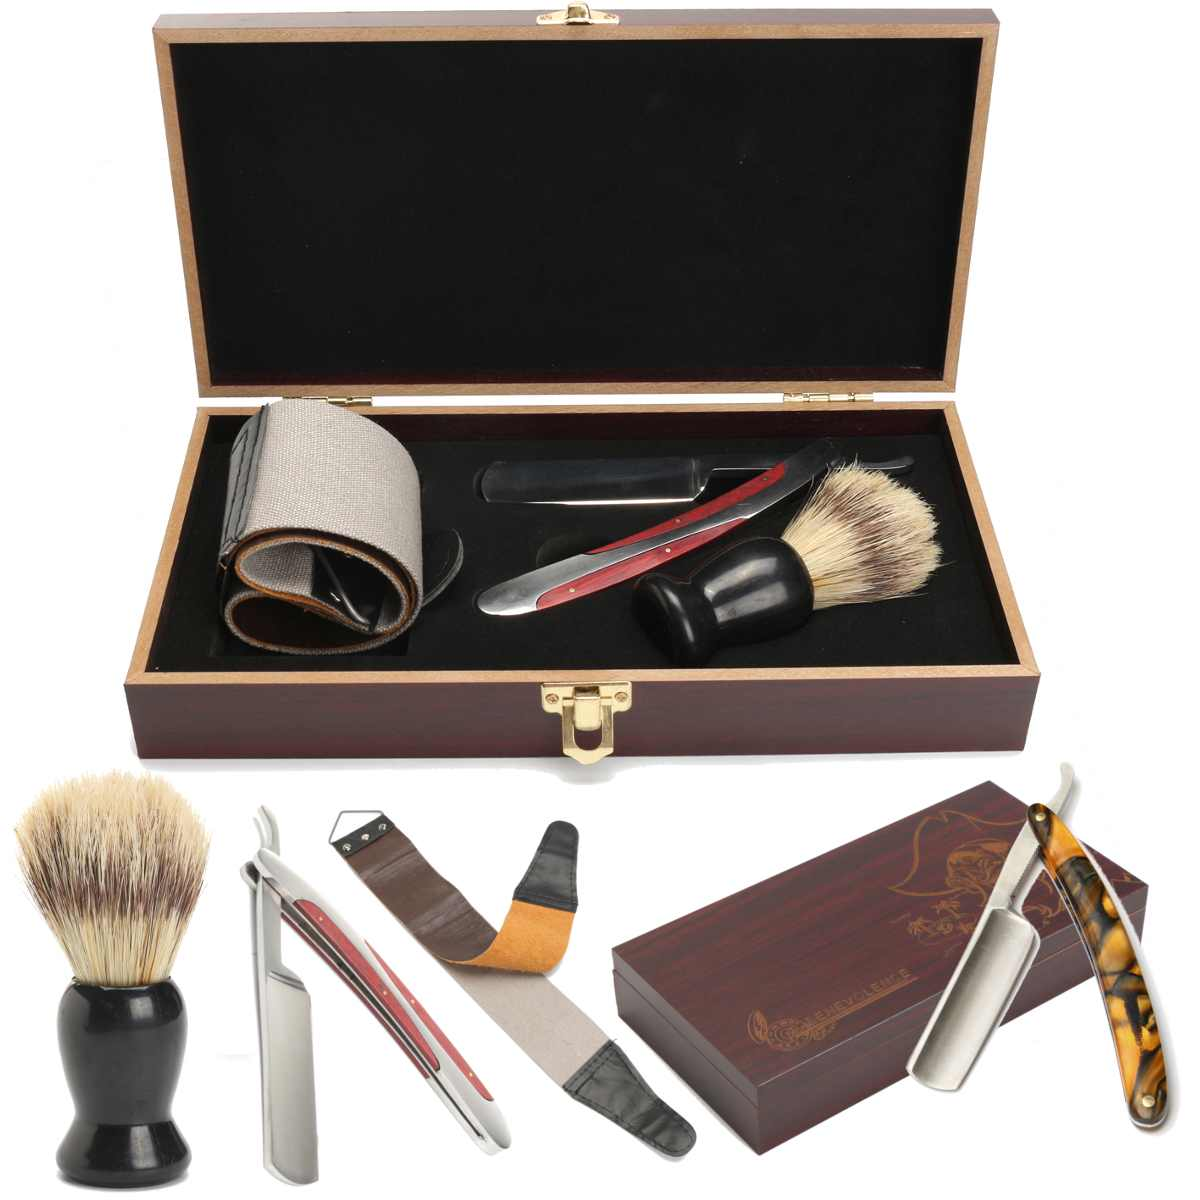 4Pcs Vintage Manual Shaver Kits With Wooden Box Gifts Barber Holder Folding Shaving Knife Shave Beard Cutter